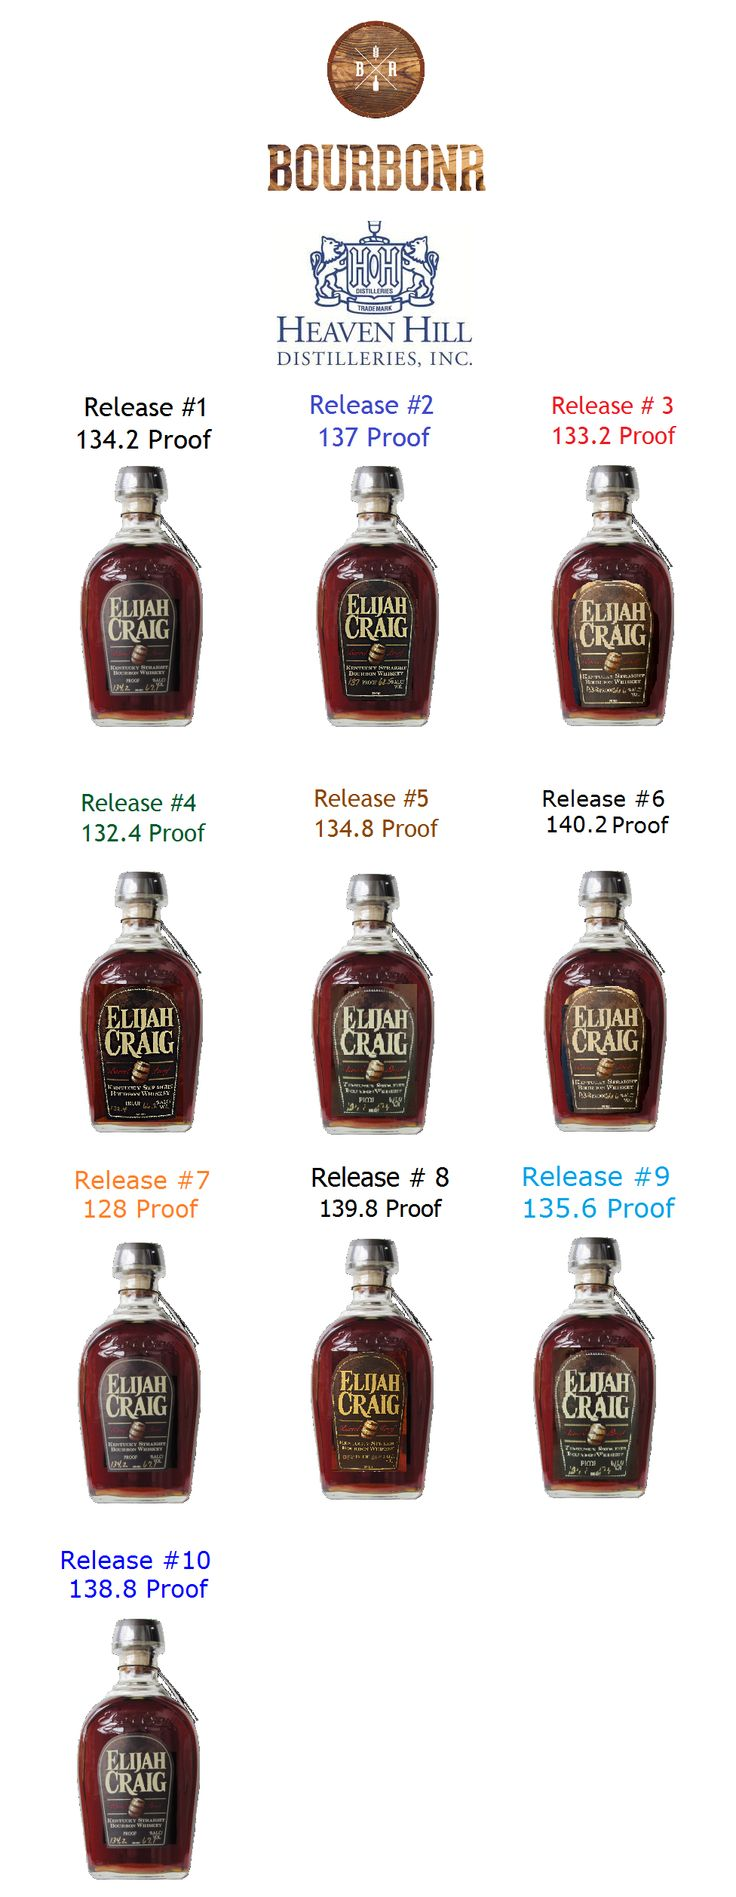 Elijah Craig Barrel Proof Release Cheat Sheet In the fall of 2013, Heaven Hill Distilleryreleased the first Elijah Craig Barrel Proof (ECBP) which quickly became one of the hottest bourbons in the market. ECBP is a 12-year-old uncut, unfiltered bourbon which Heaven Hill releases once a quarter. Aside from the excellent flavor and high proof …